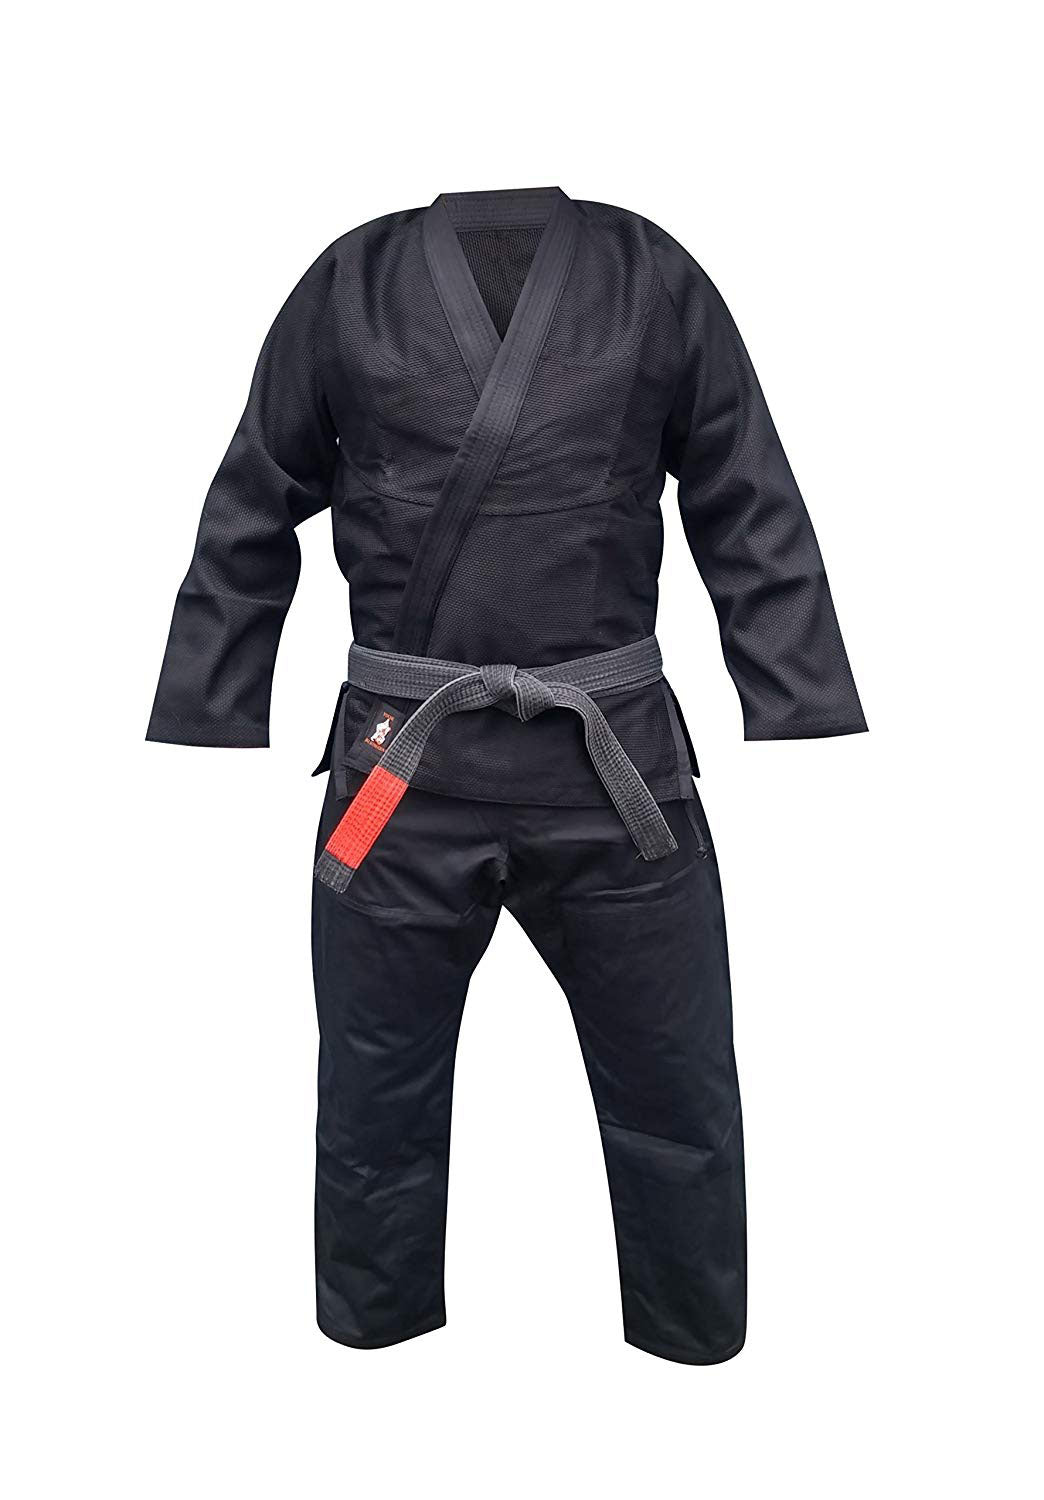 Your Jiu Jitsu Gear Brazilian Jiu Jitsu Premium 350 Uniform Black